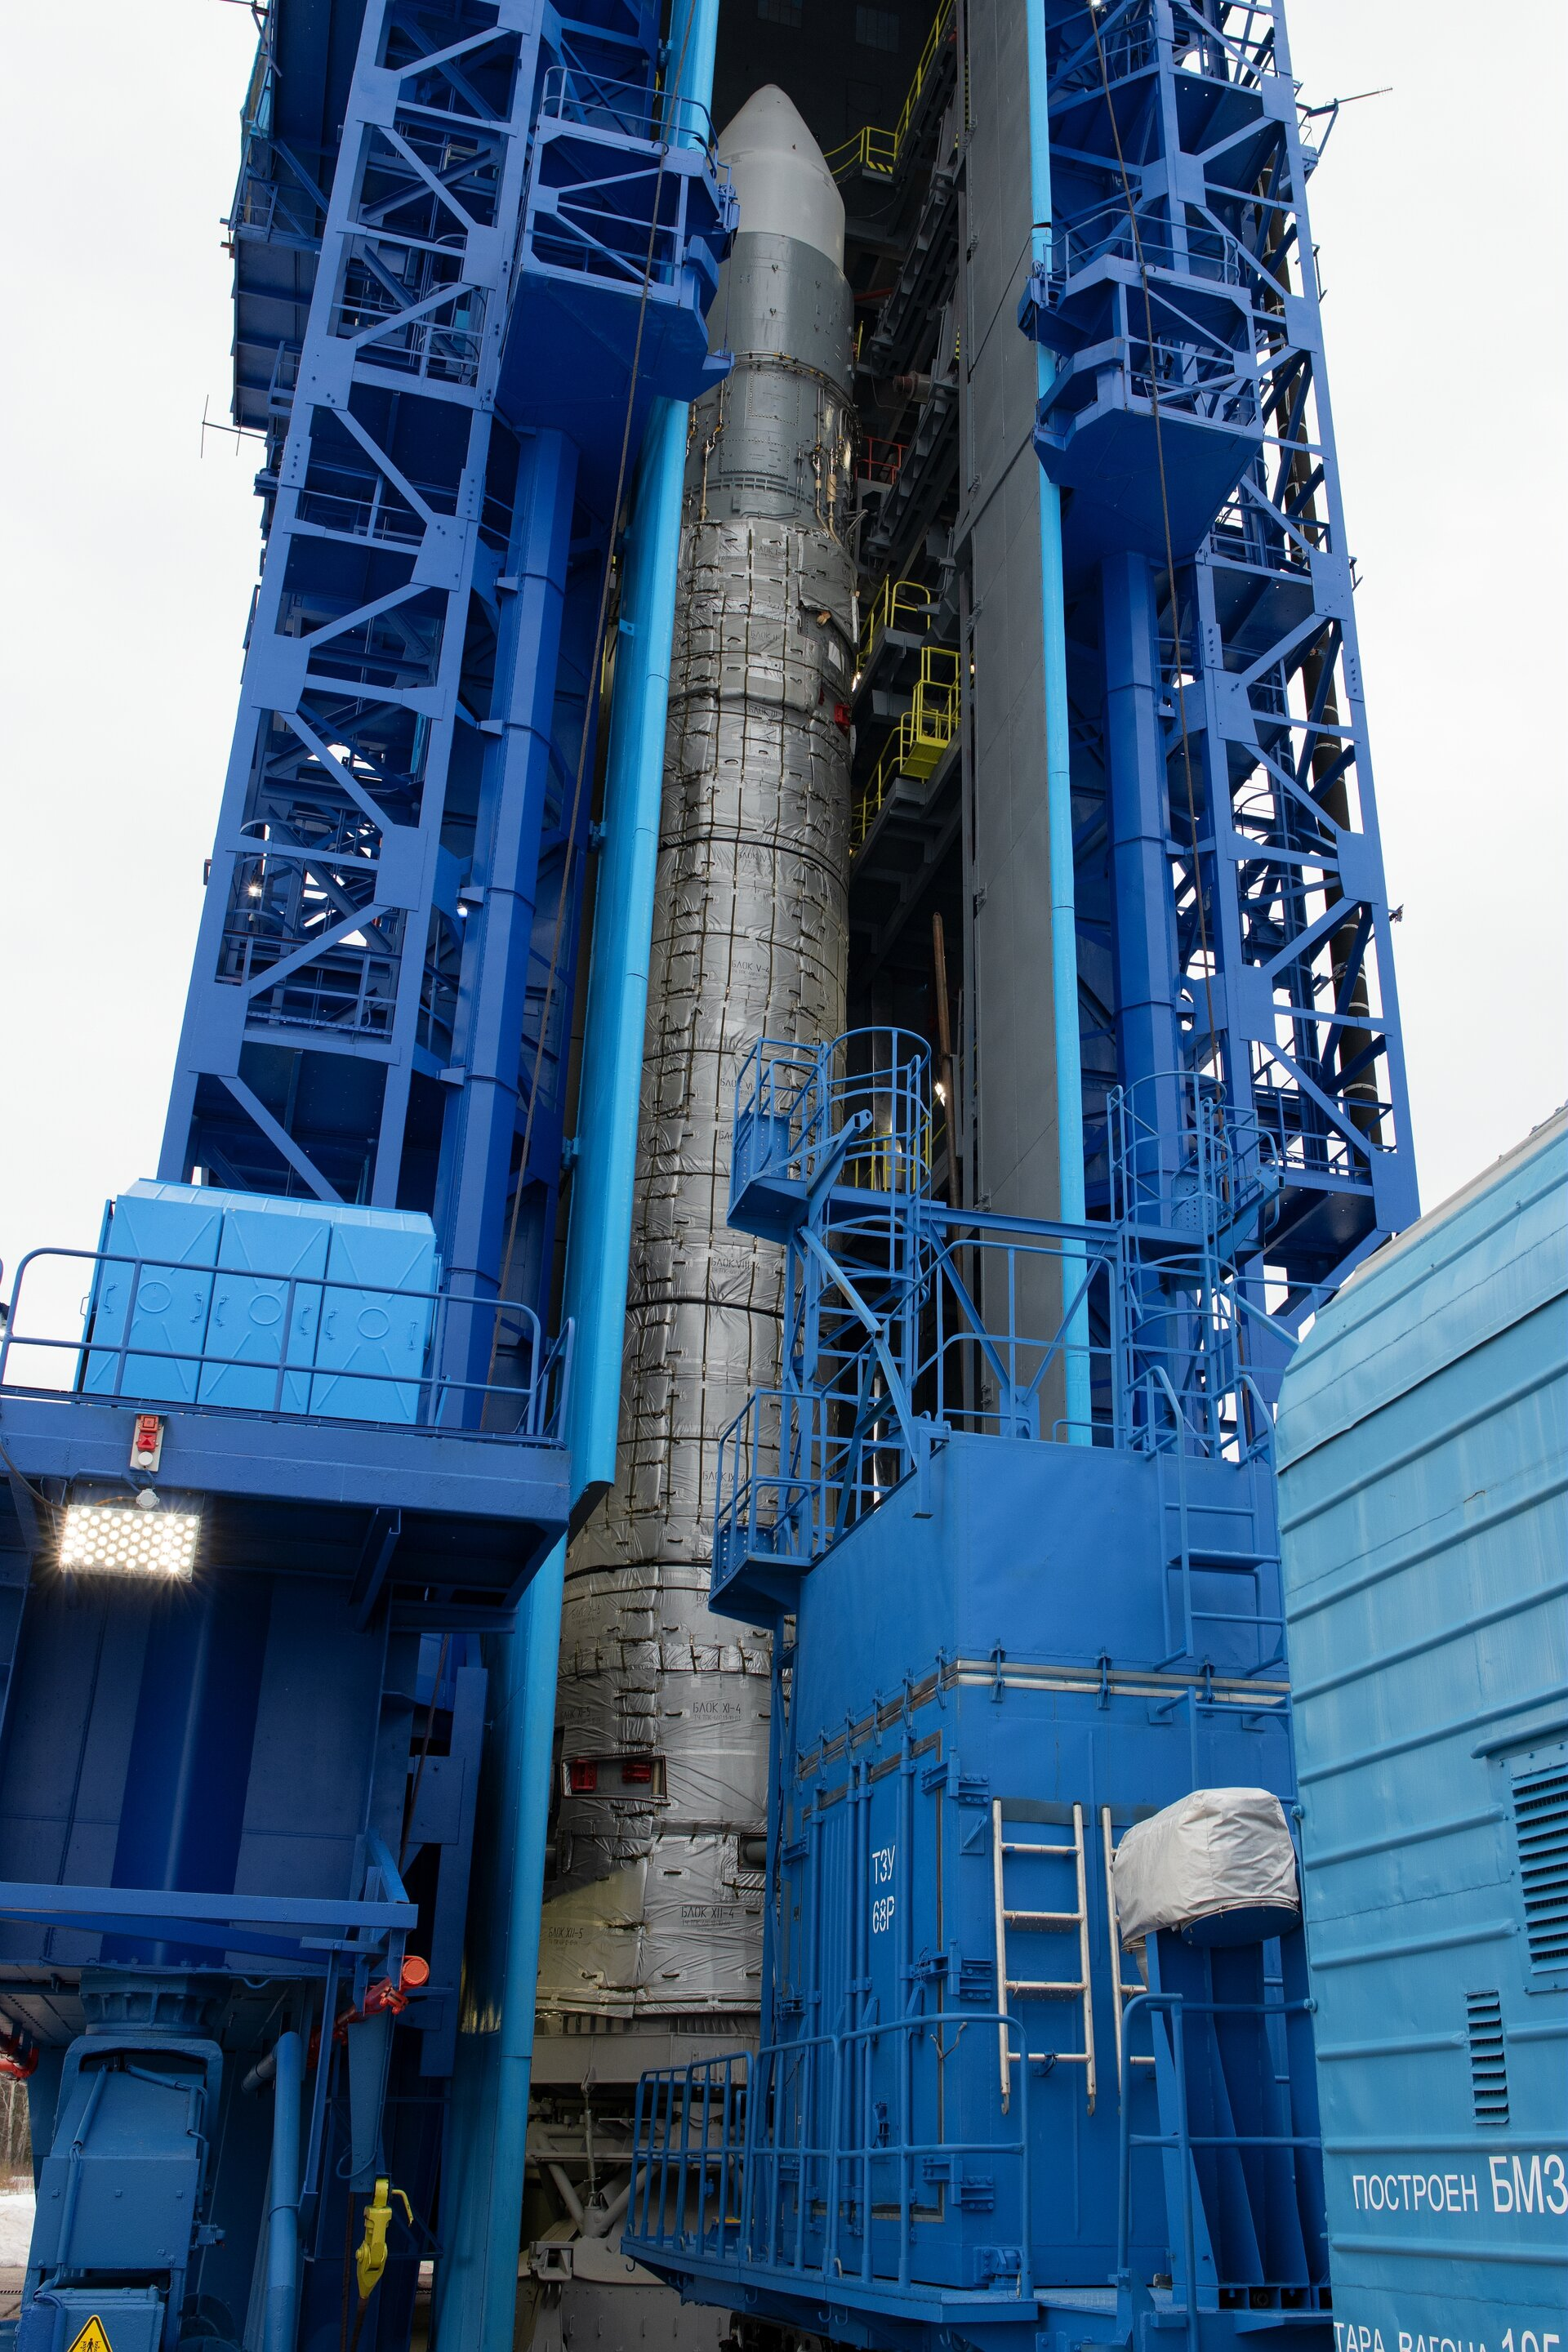 Sentinel-3B rocket in the launch tower